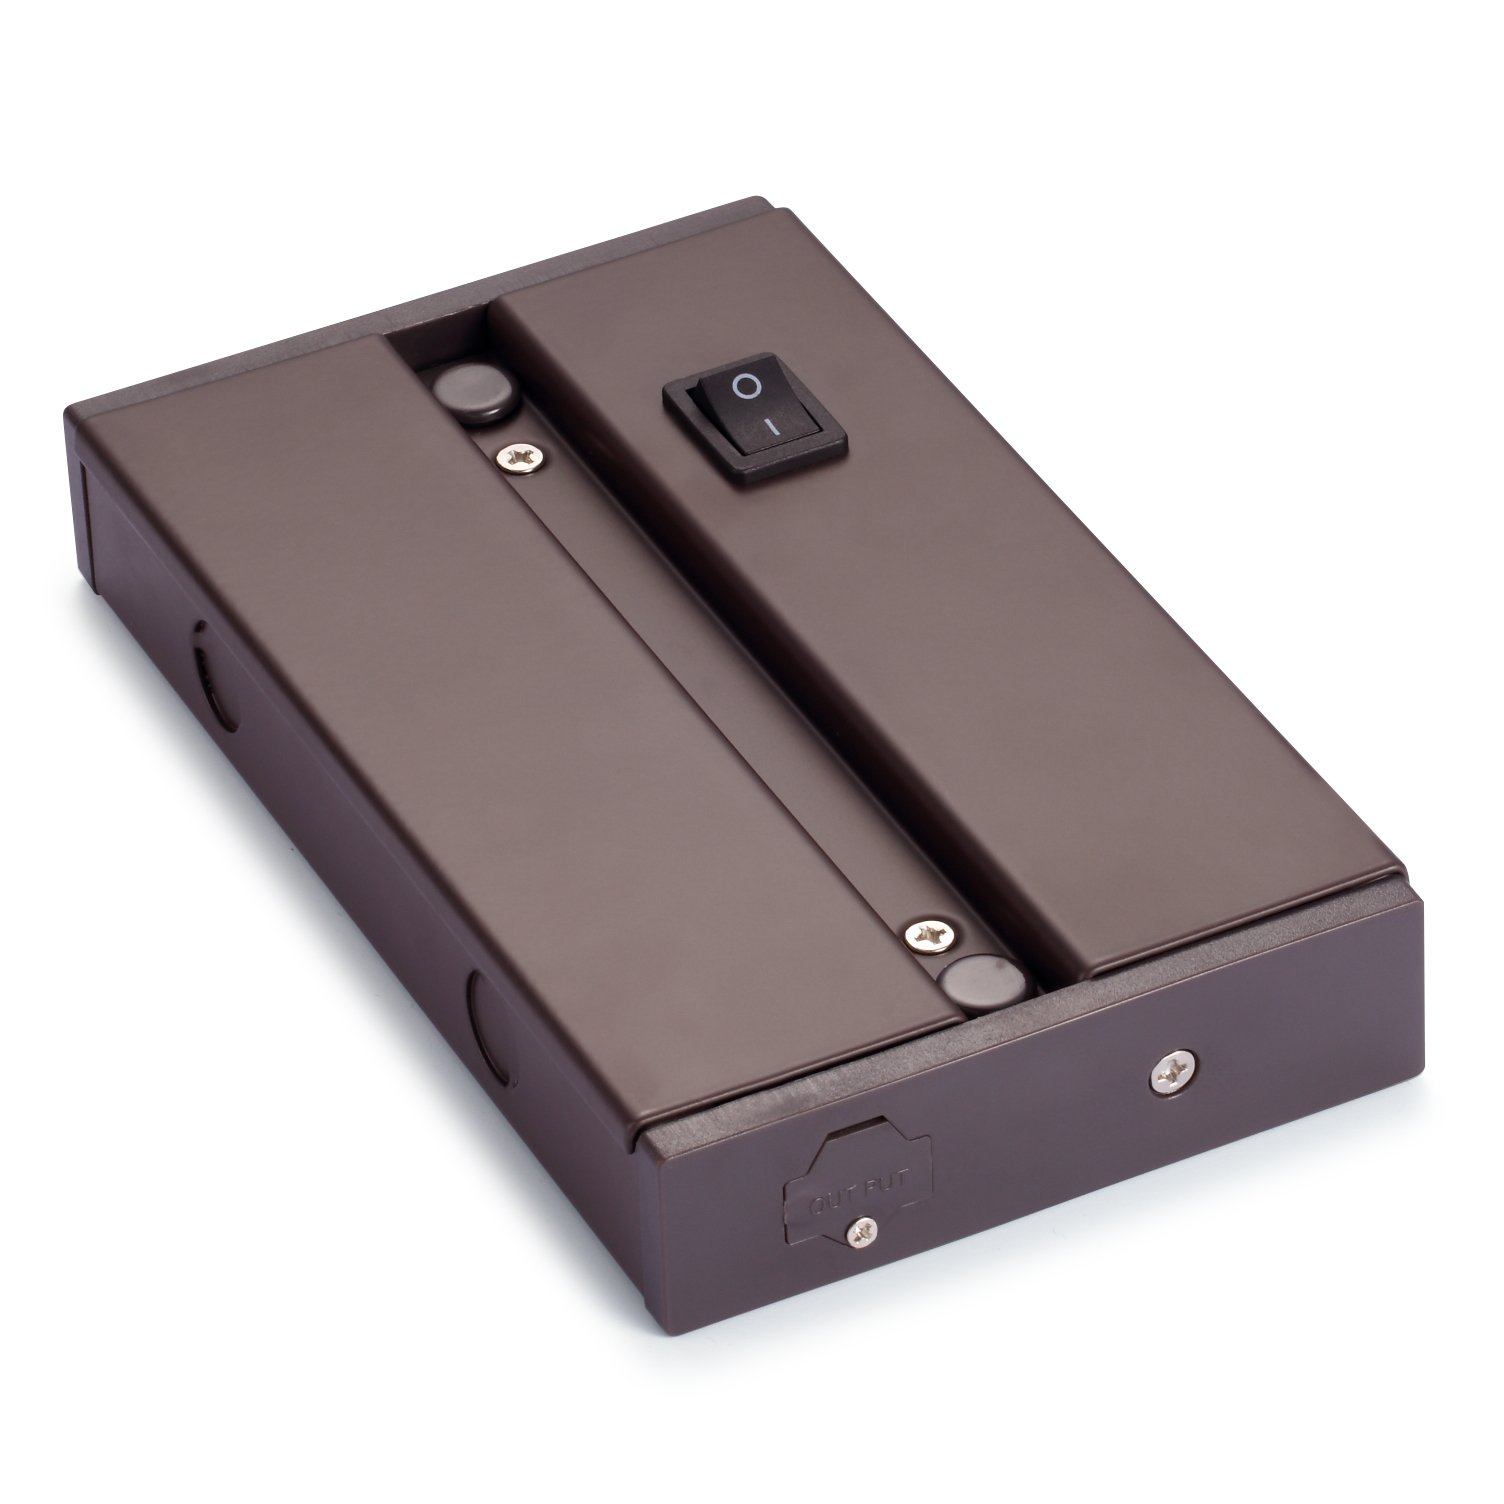 GetInLight Junction Box for IN-0201, IN-0202, IN-0207 and IN-0210 Series, Metal Material, IN-0501-2-BZ